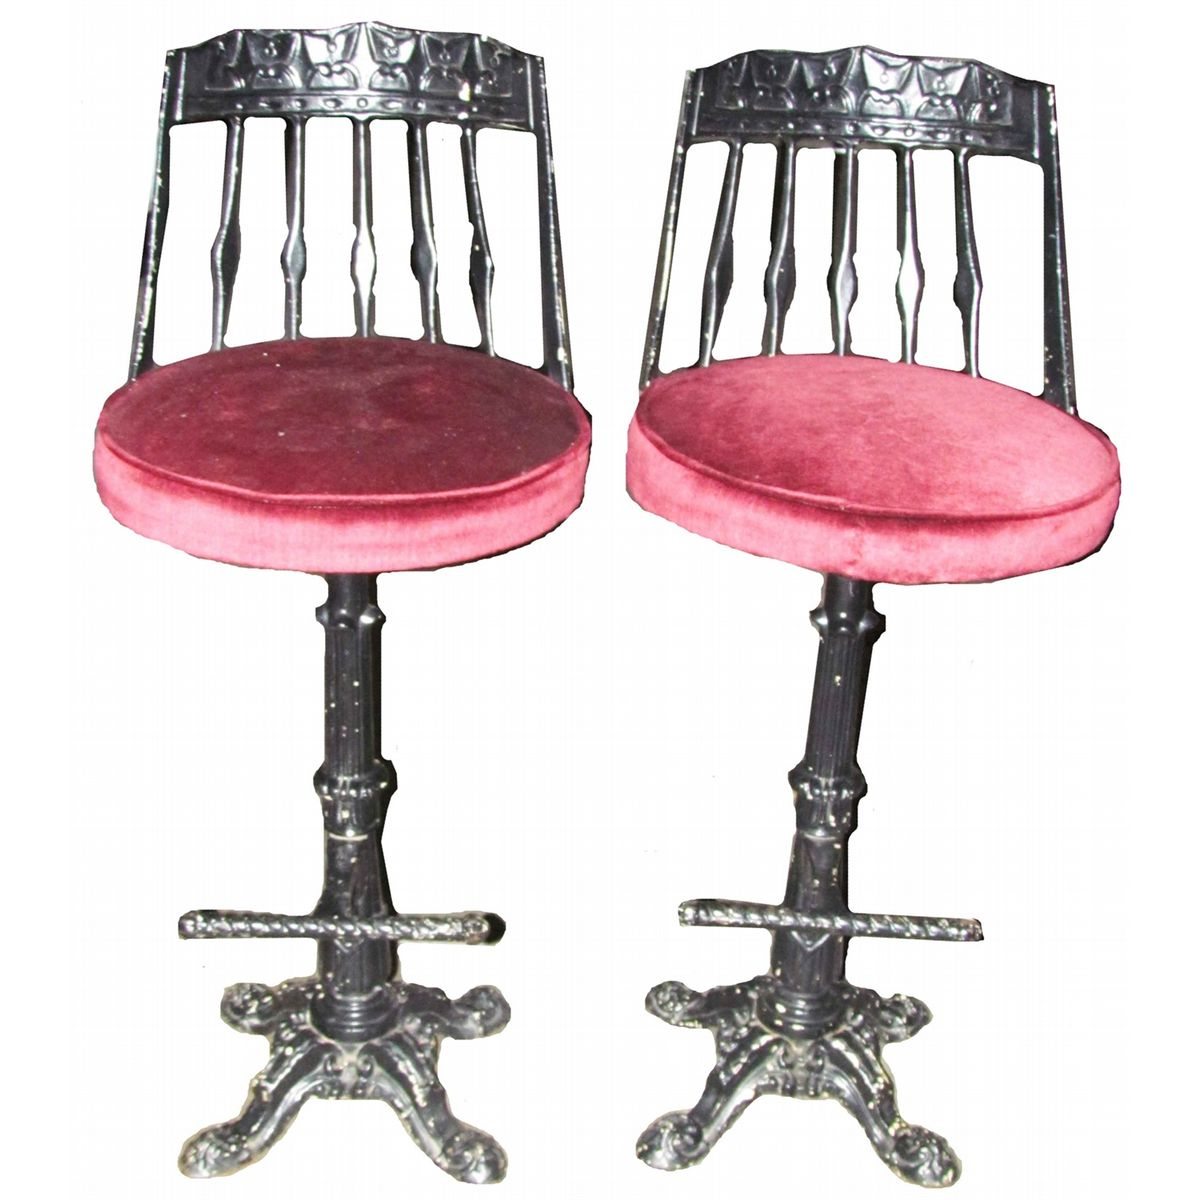 Two cast iron swivel bar stools